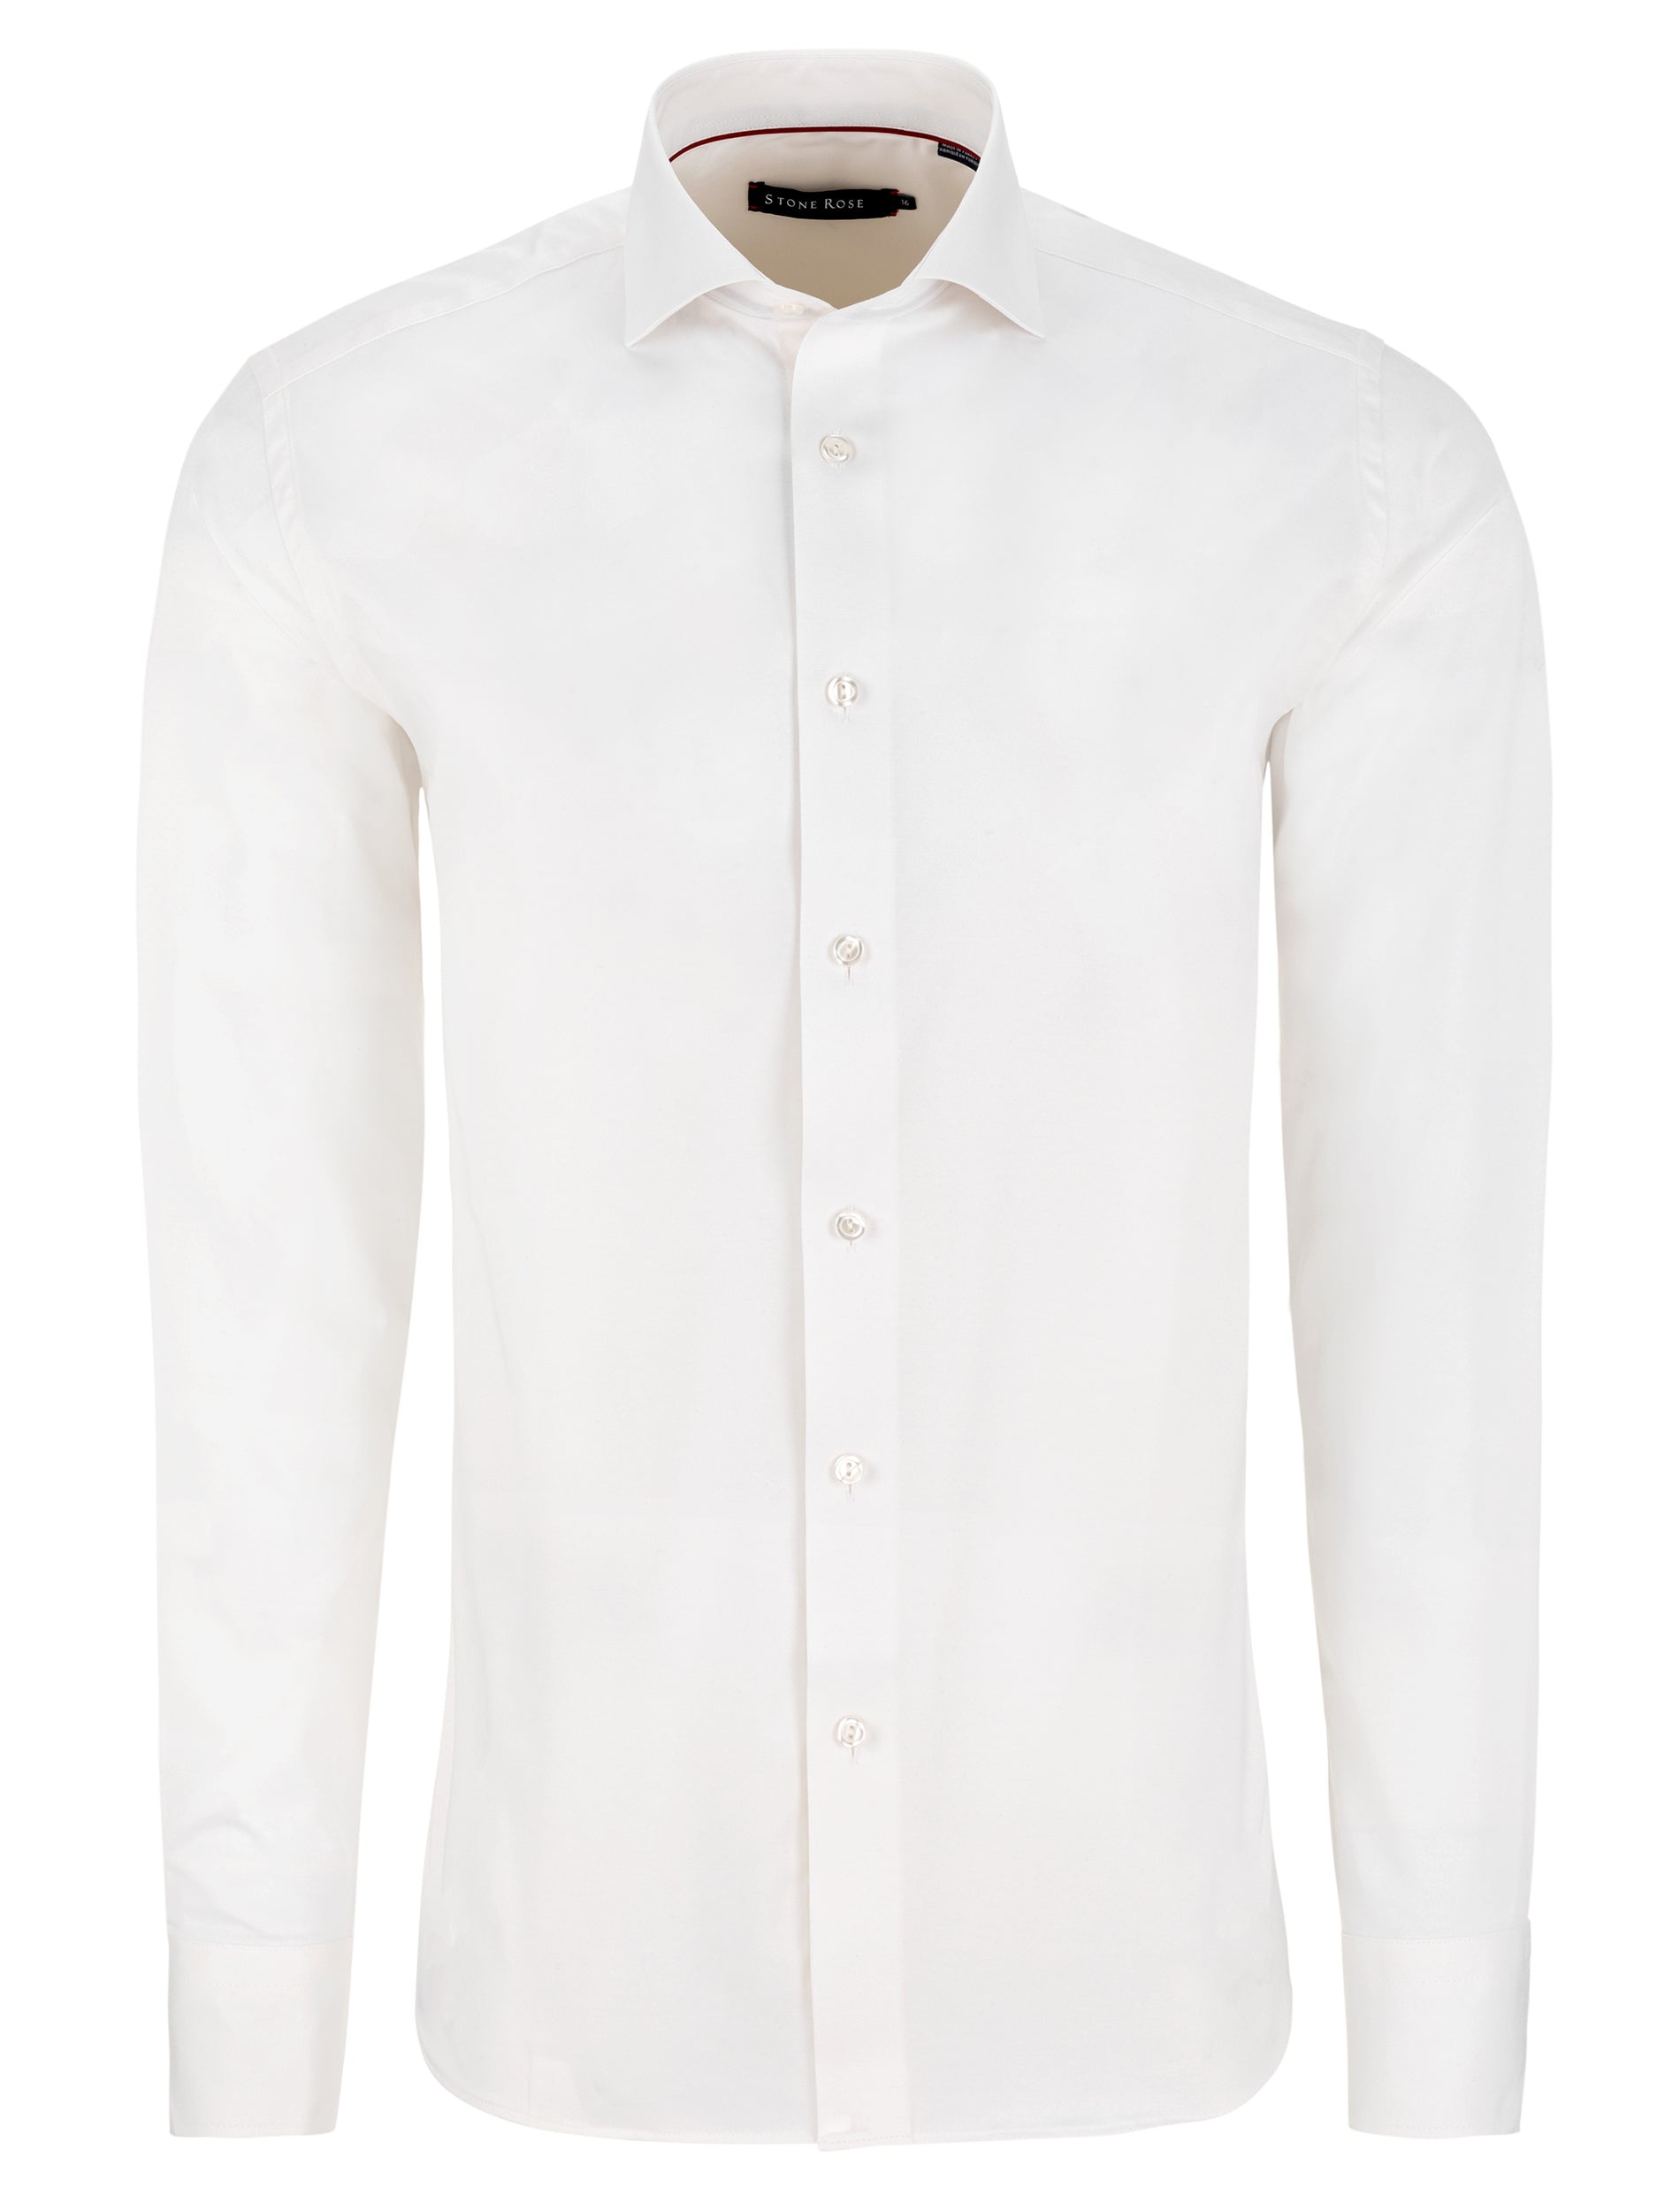 White Dry Touch Long Sleeve Shirt